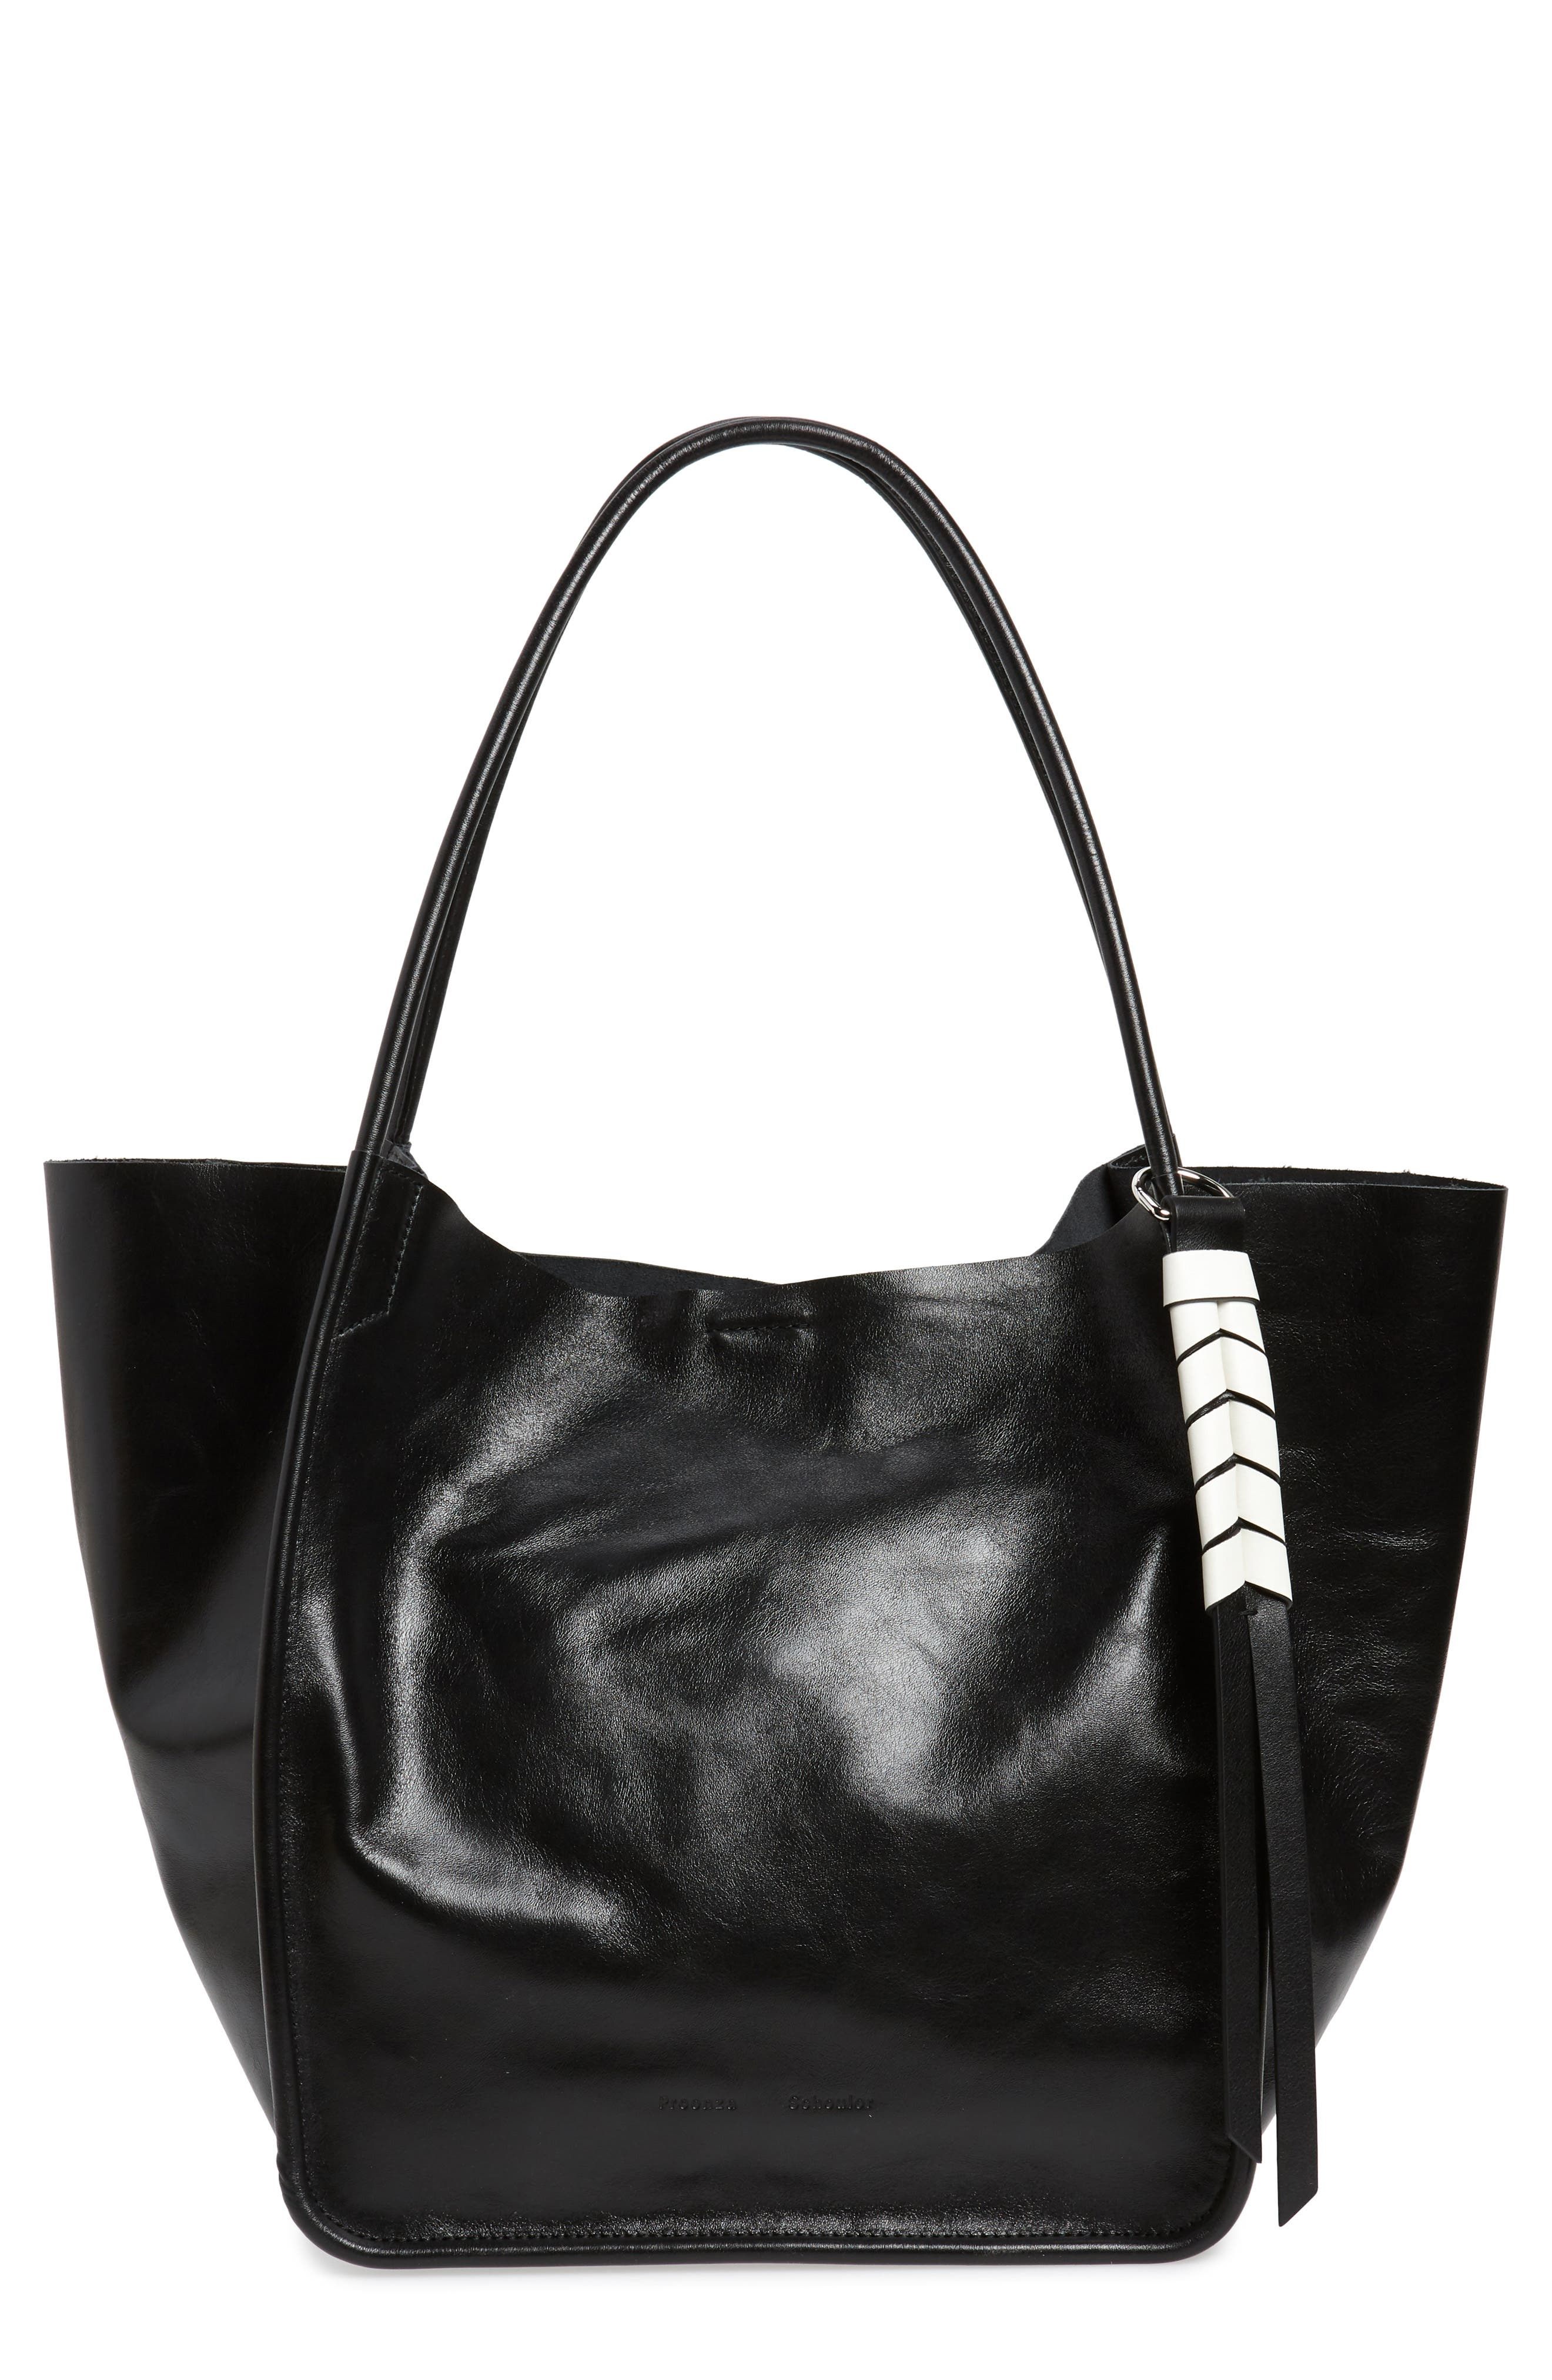 PROENZA SCHOULER, Large Calfskin Leather Tote, Main thumbnail 1, color, BLACK